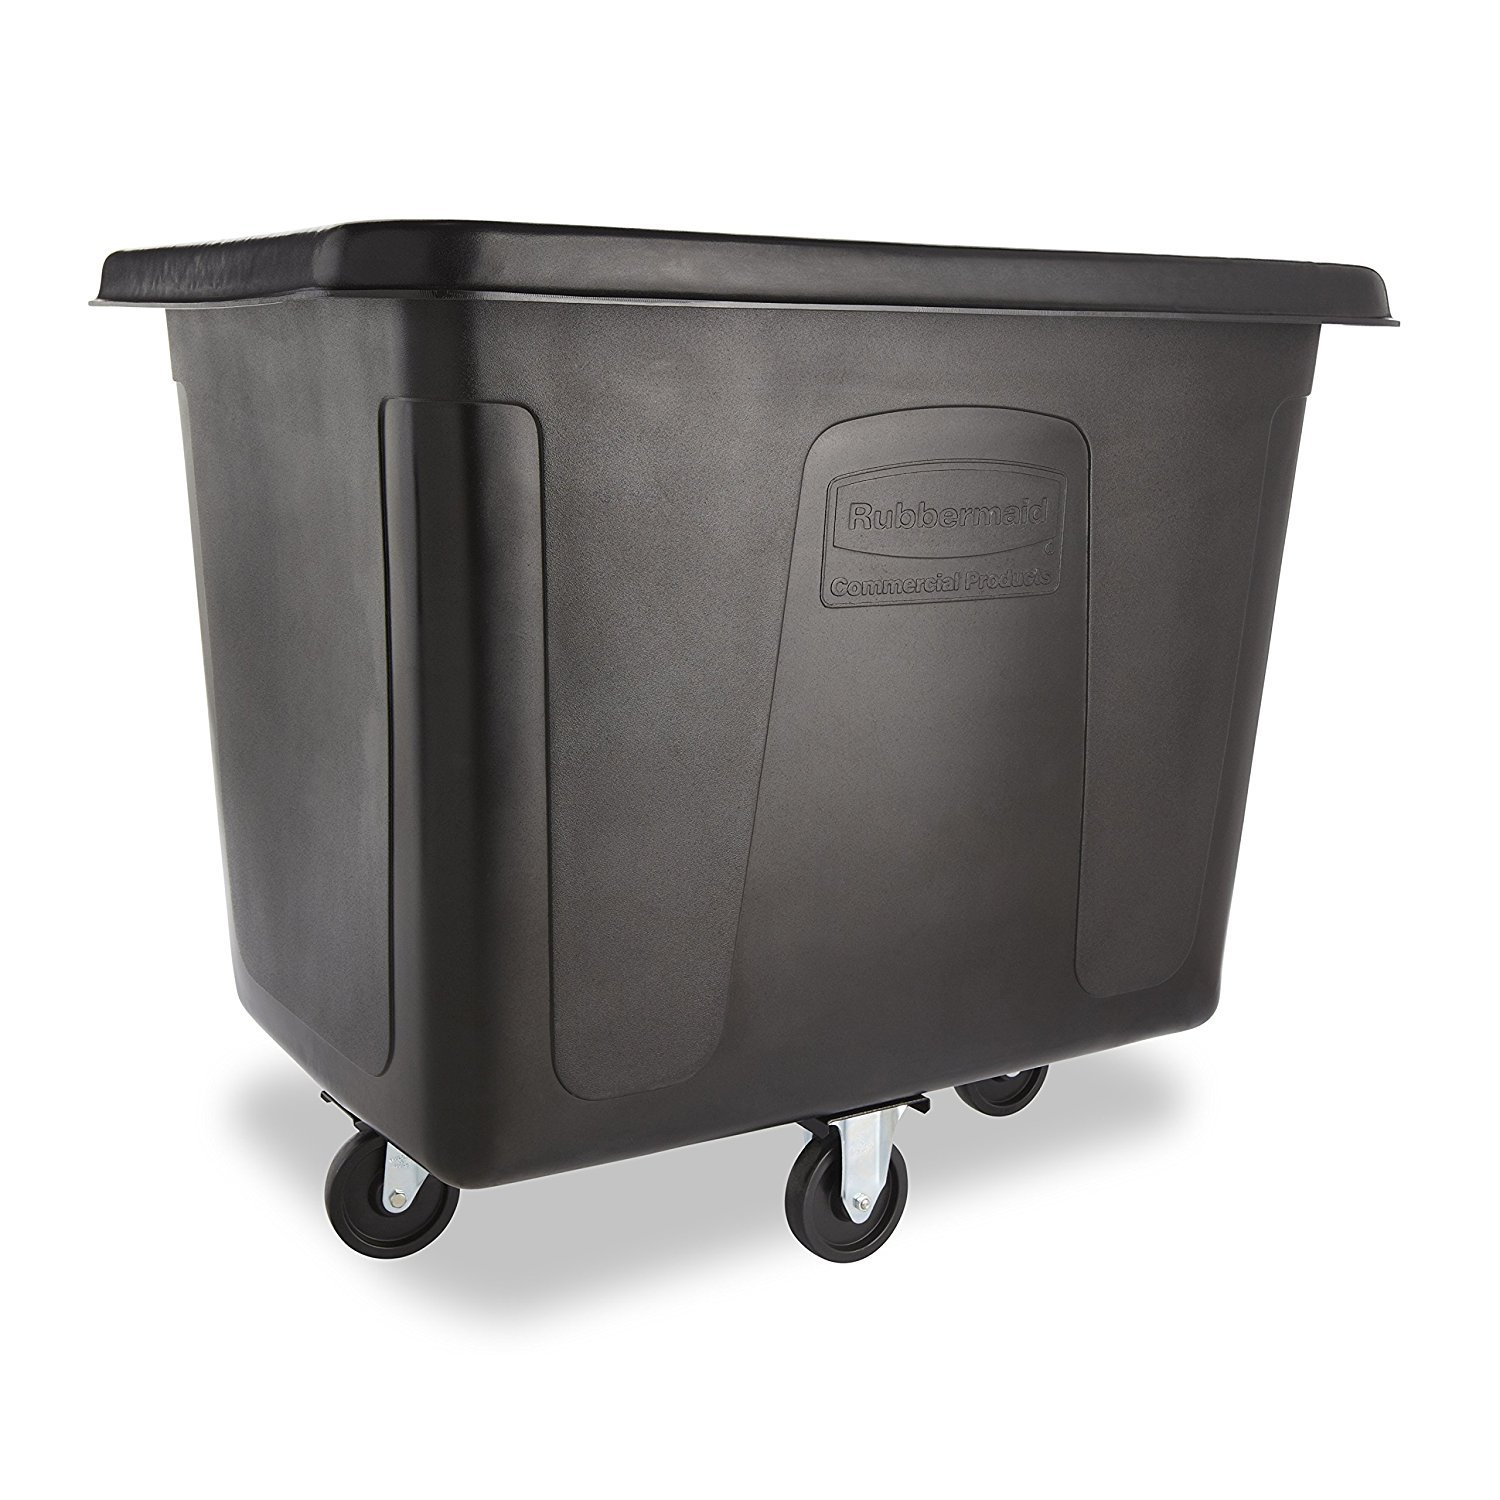 Rubbermaid Commercial MDPE 102.9-Gallon Laundry and Waste Collection Cube Truck, Rectangular, 31-Inch Width x 43-3/4-Inch Depth x 37-Inch Height, Black (FG461600BLA)